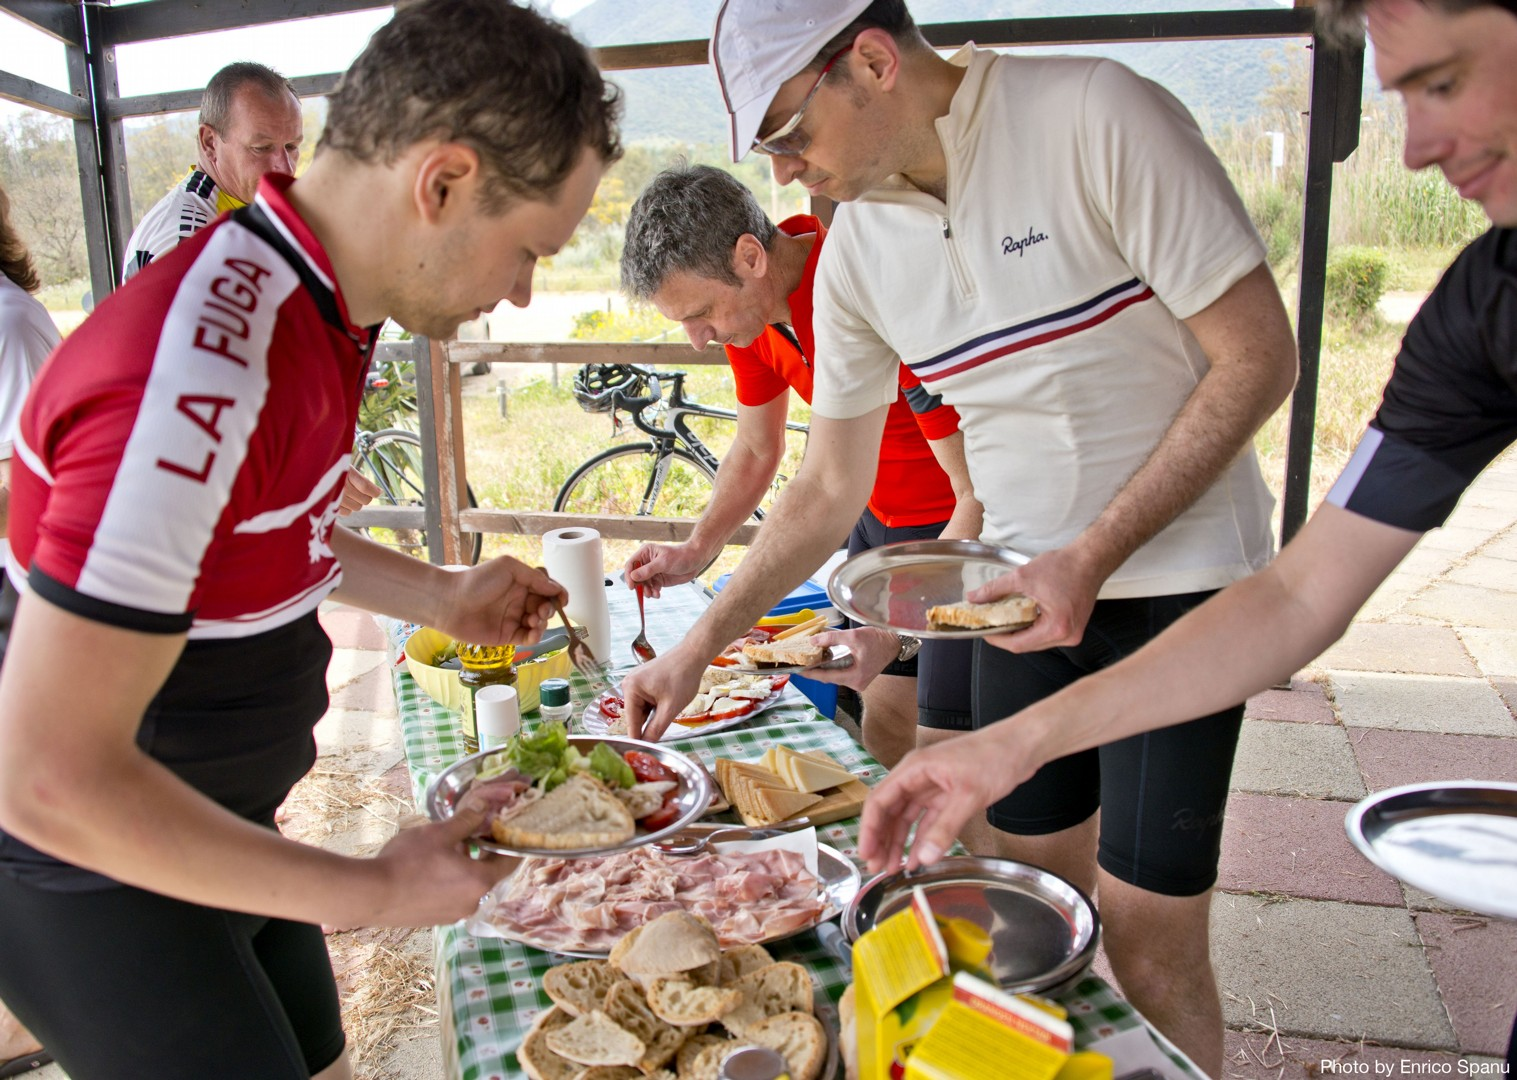 Guided-Road-Cycling-Holiday-Sardinia-Sardinian-Mountains-Flumendosa-Valley.jpg - Italy - Sardinia - Mountain Explorer - Guided Road Cycling Holiday - Road Cycling